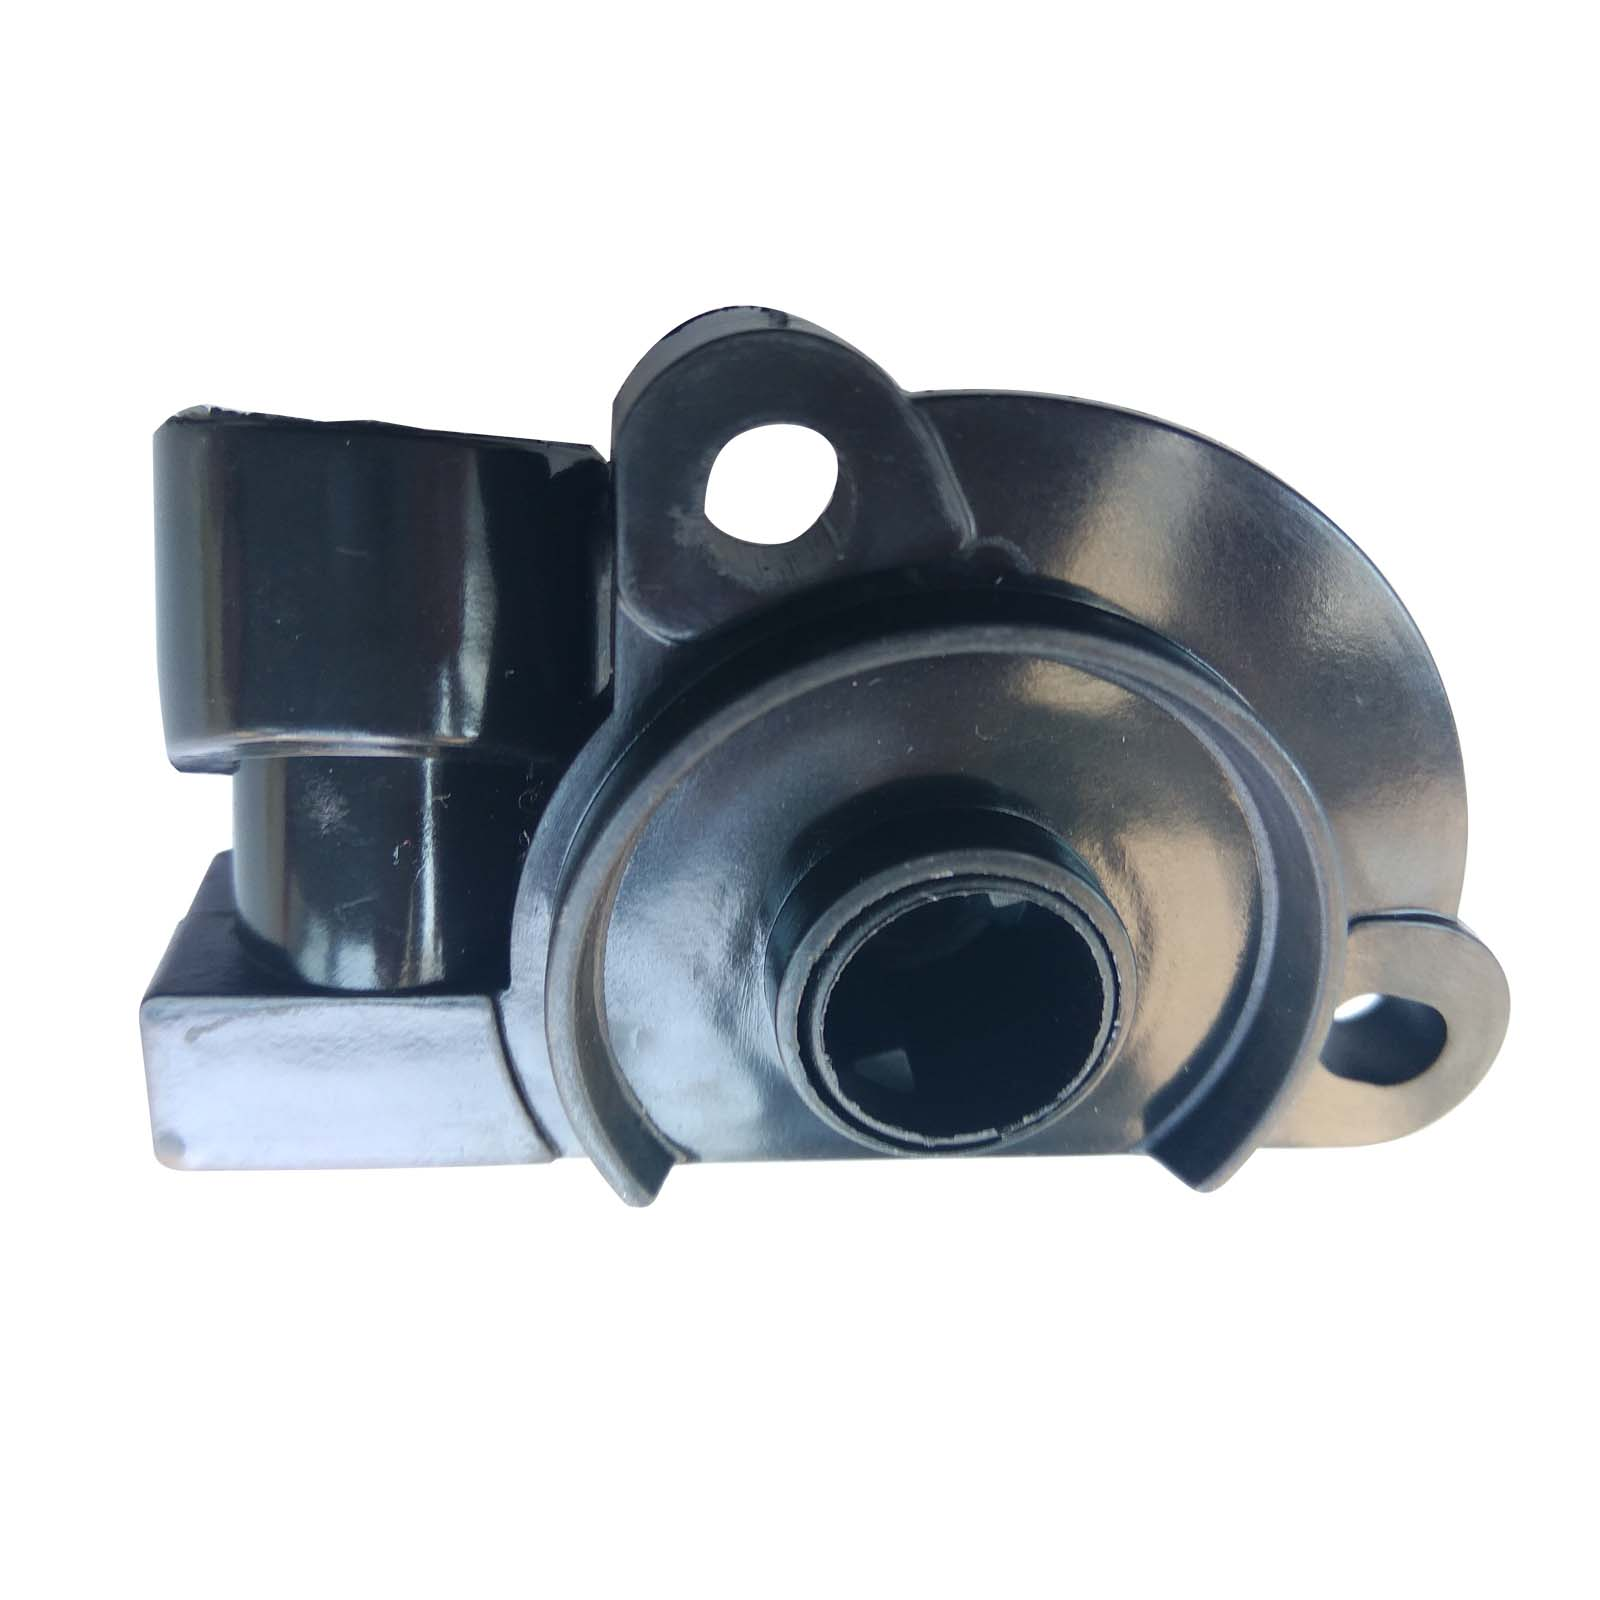 Throttle Position Sensor Toyota Hilux: TPS 17106681 Holden Commodore V6 VS VT VU VX VY Throttle